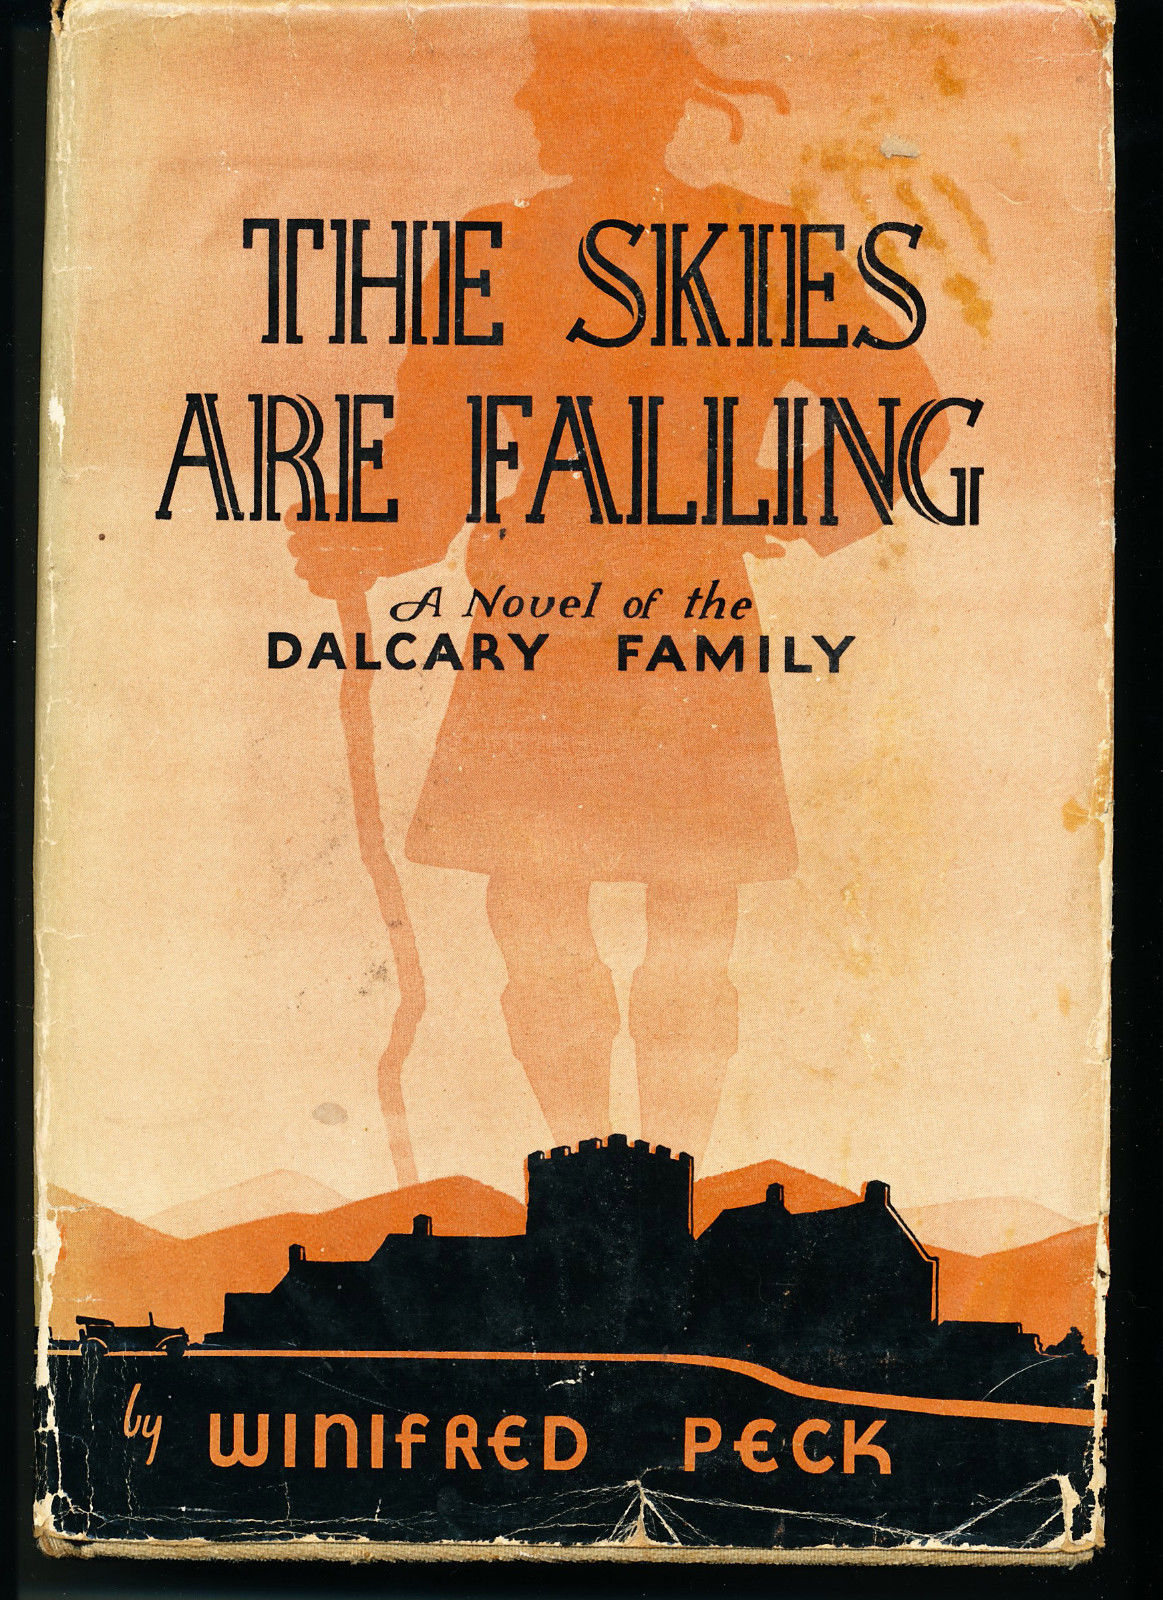 The Skies are Falling by Winifred Peck